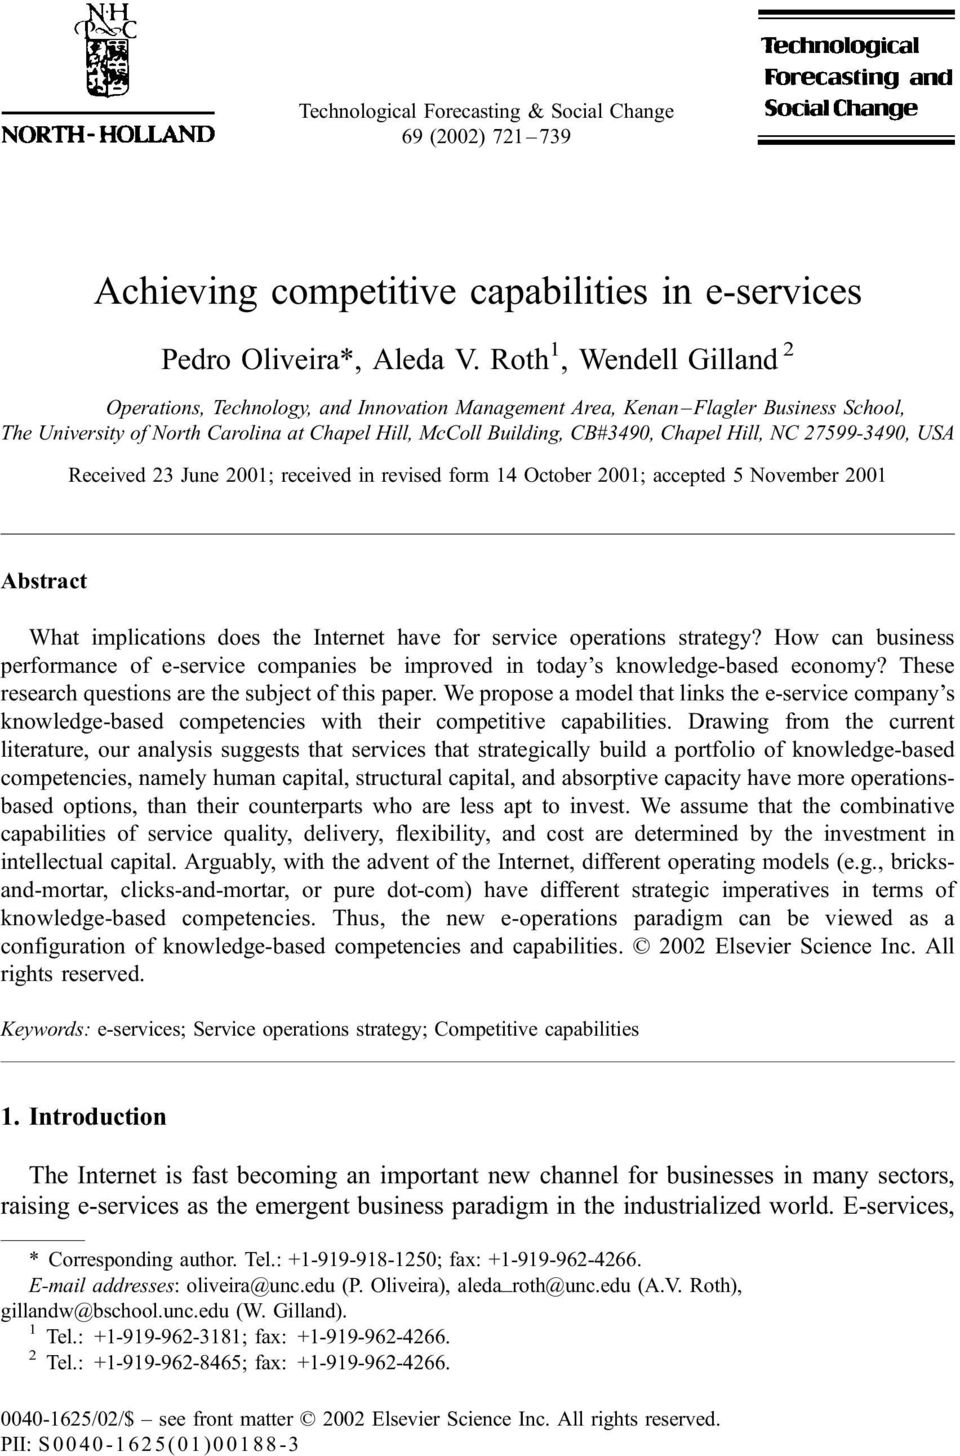 Hill, NC 27599-3490, USA Received 23 June 2001; received in revised form 14 October 2001; accepted 5 November 2001 Abstract What implications does the Internet have for service operations strategy?